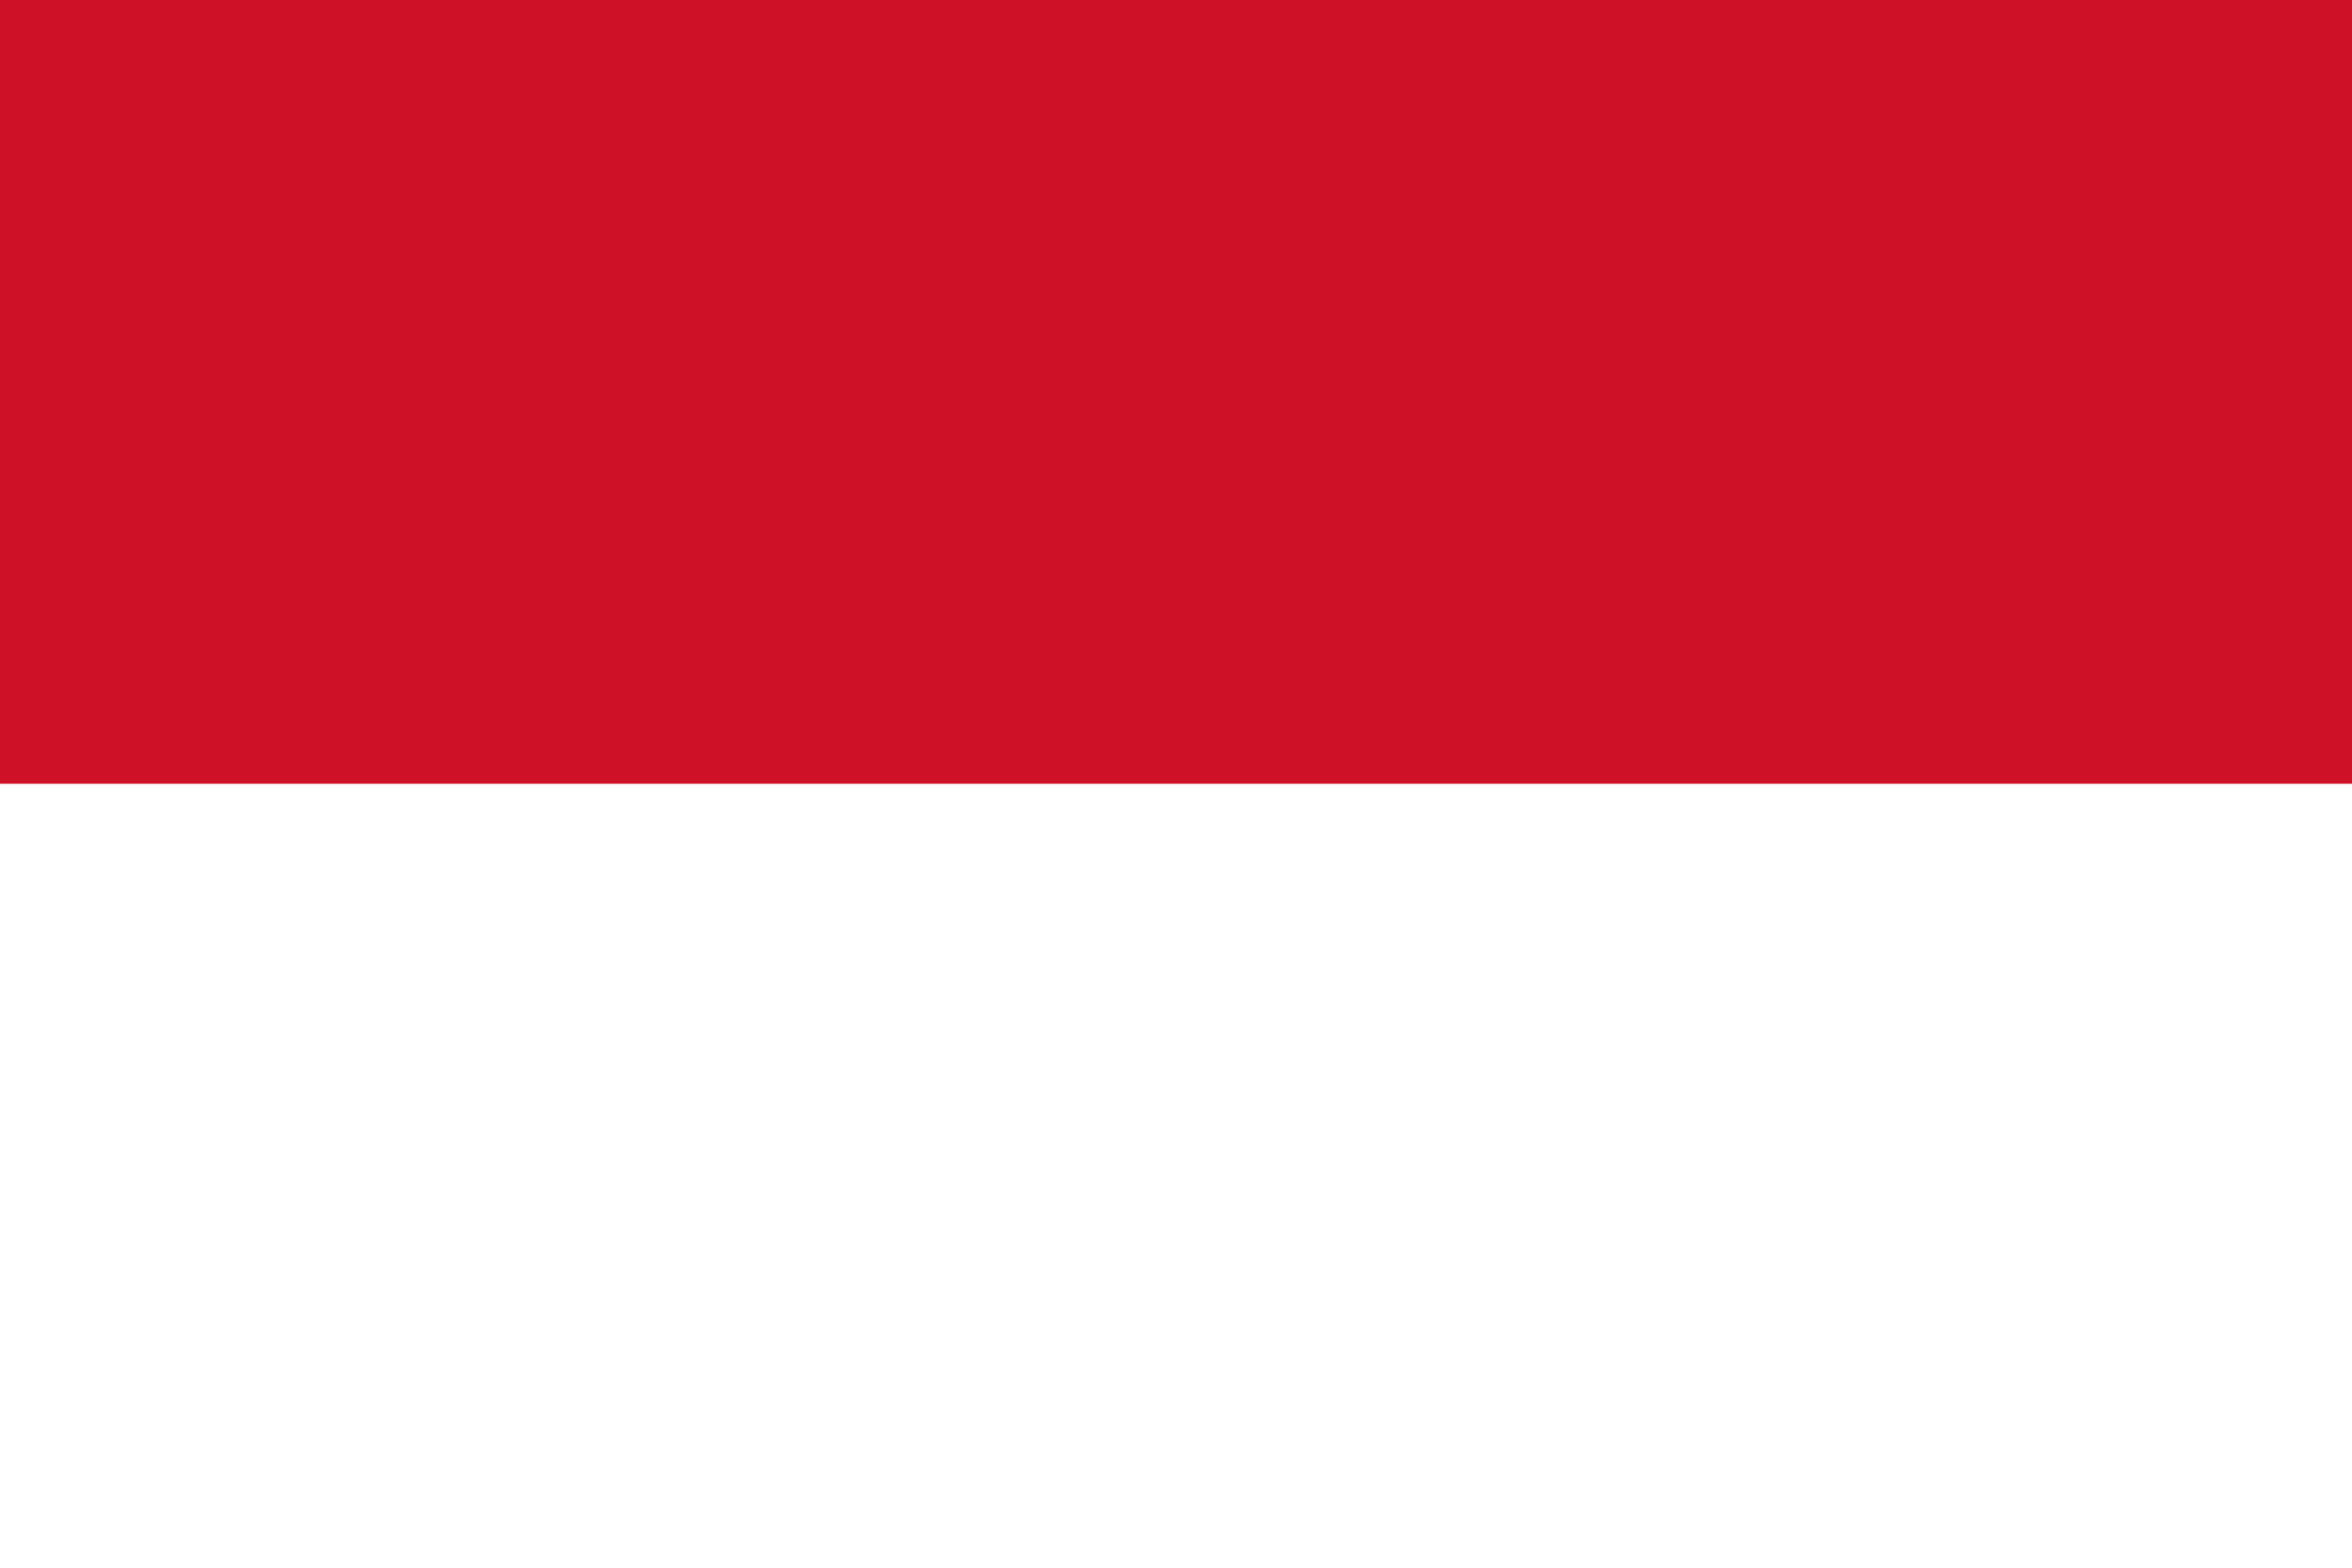 https://aerospaceexport.com/wp-content/uploads/2019/10/indonesia.png